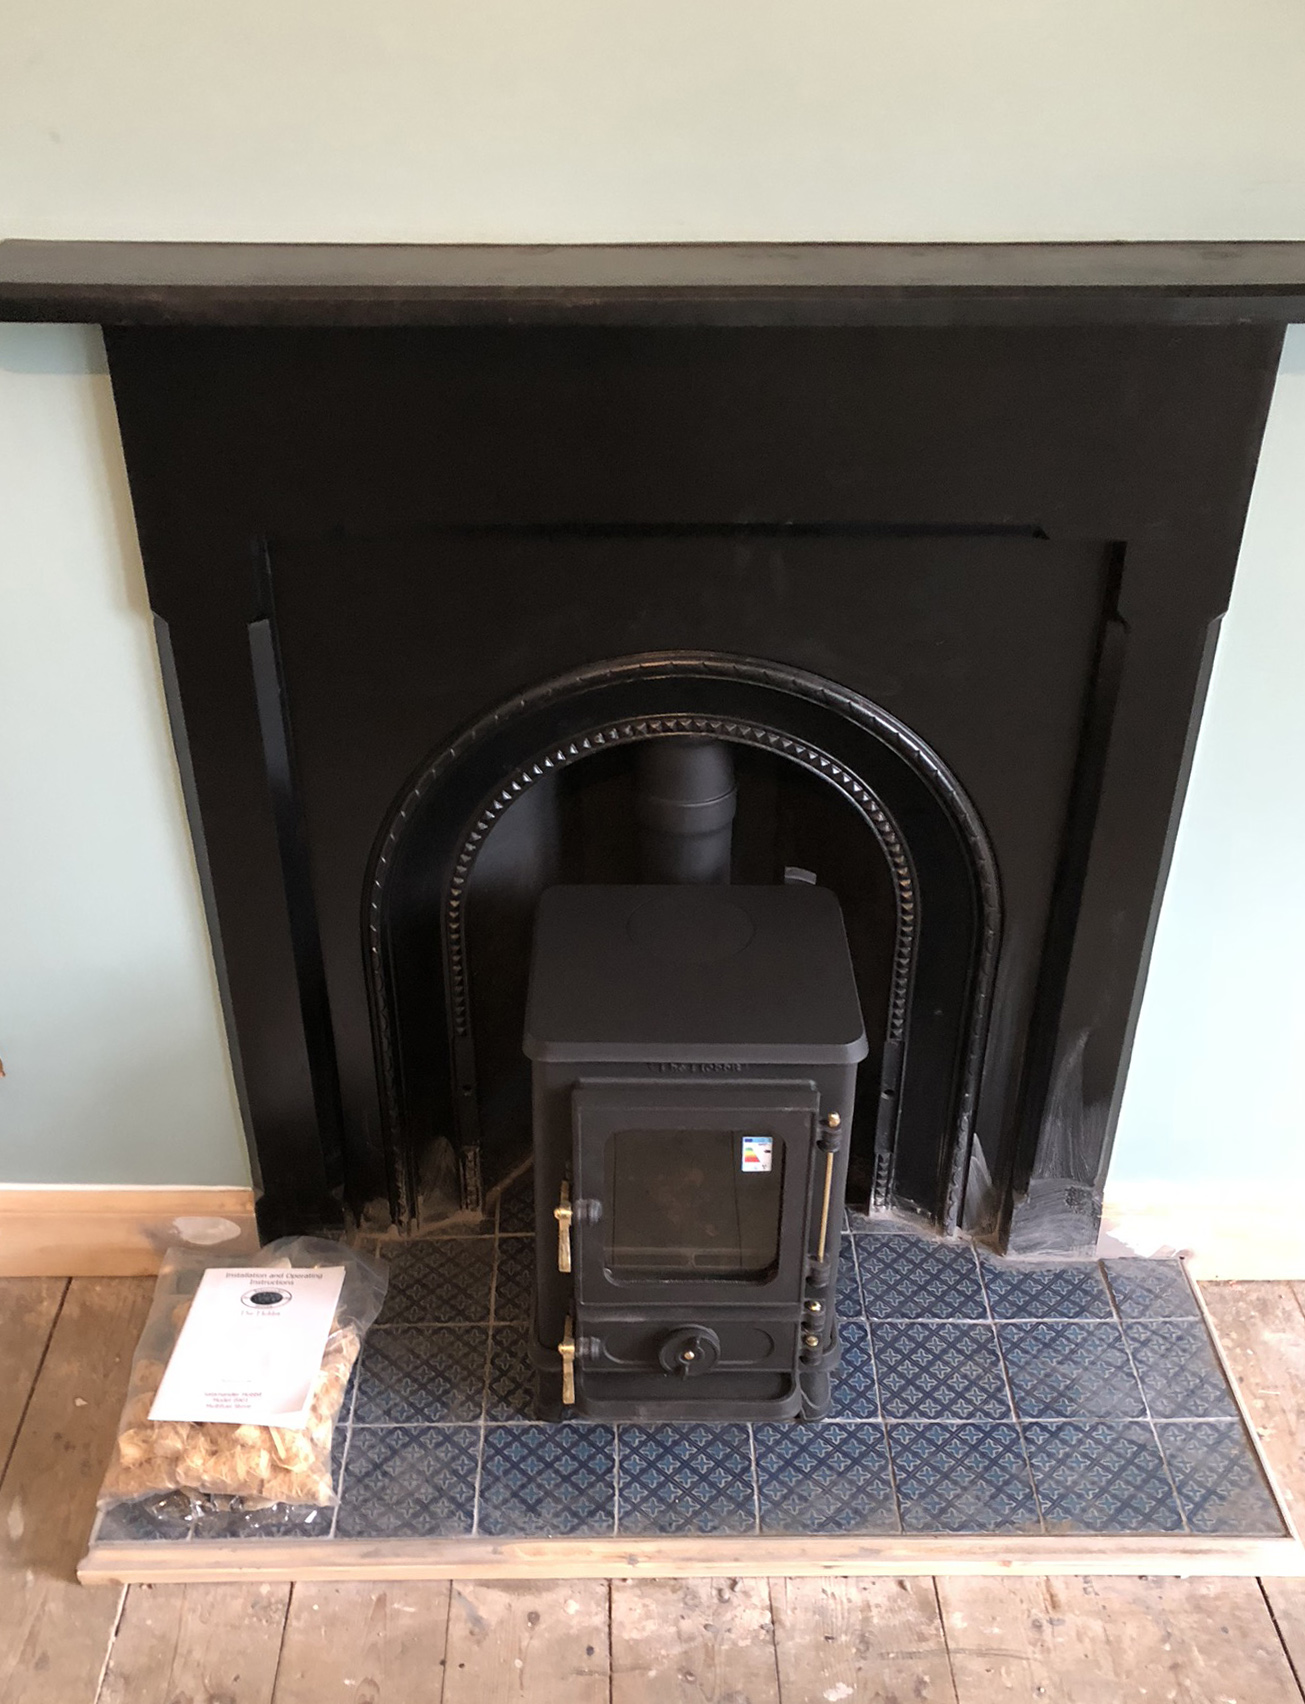 Stove on hearth